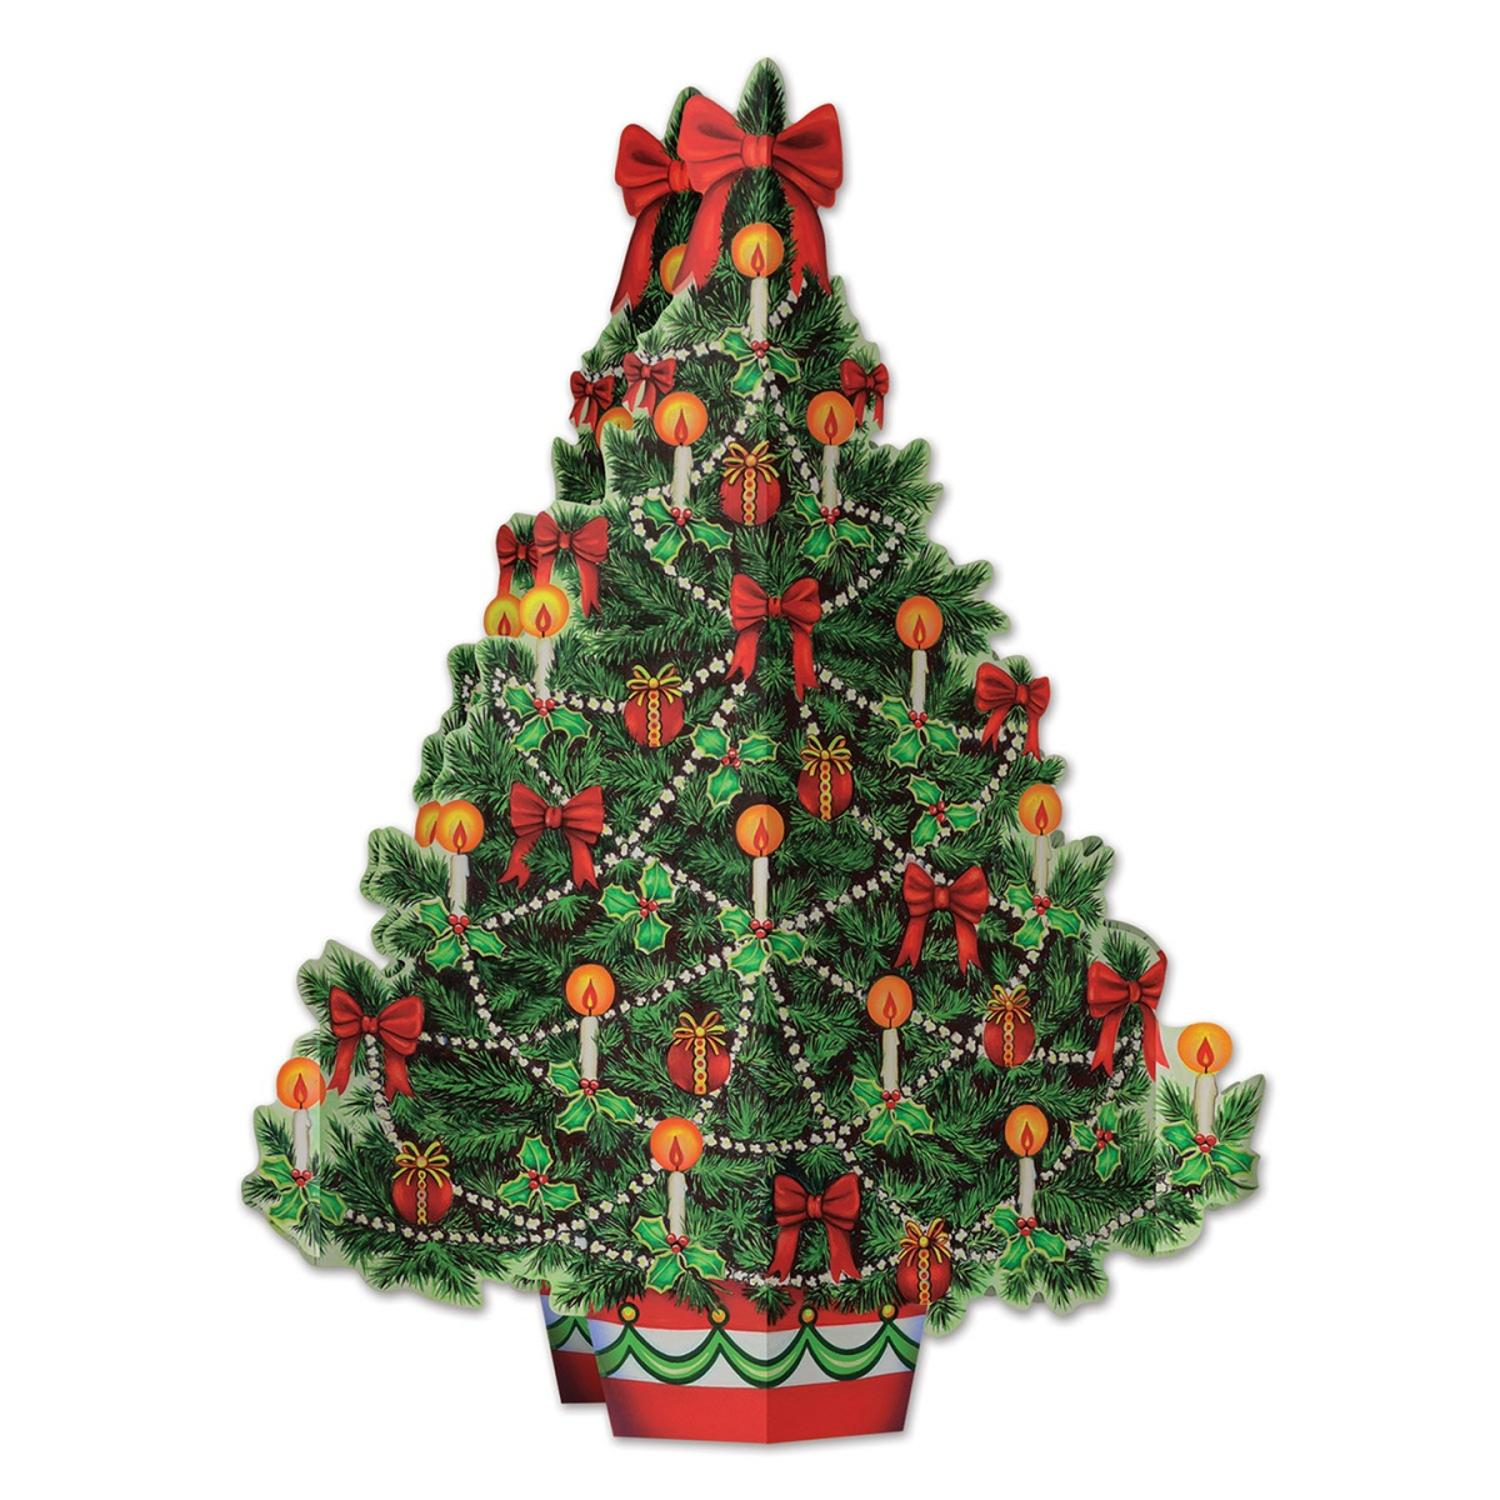 Club Pack of 12 Christmas Tree 3-D Centerpiece Holiday Decorations 11.75""